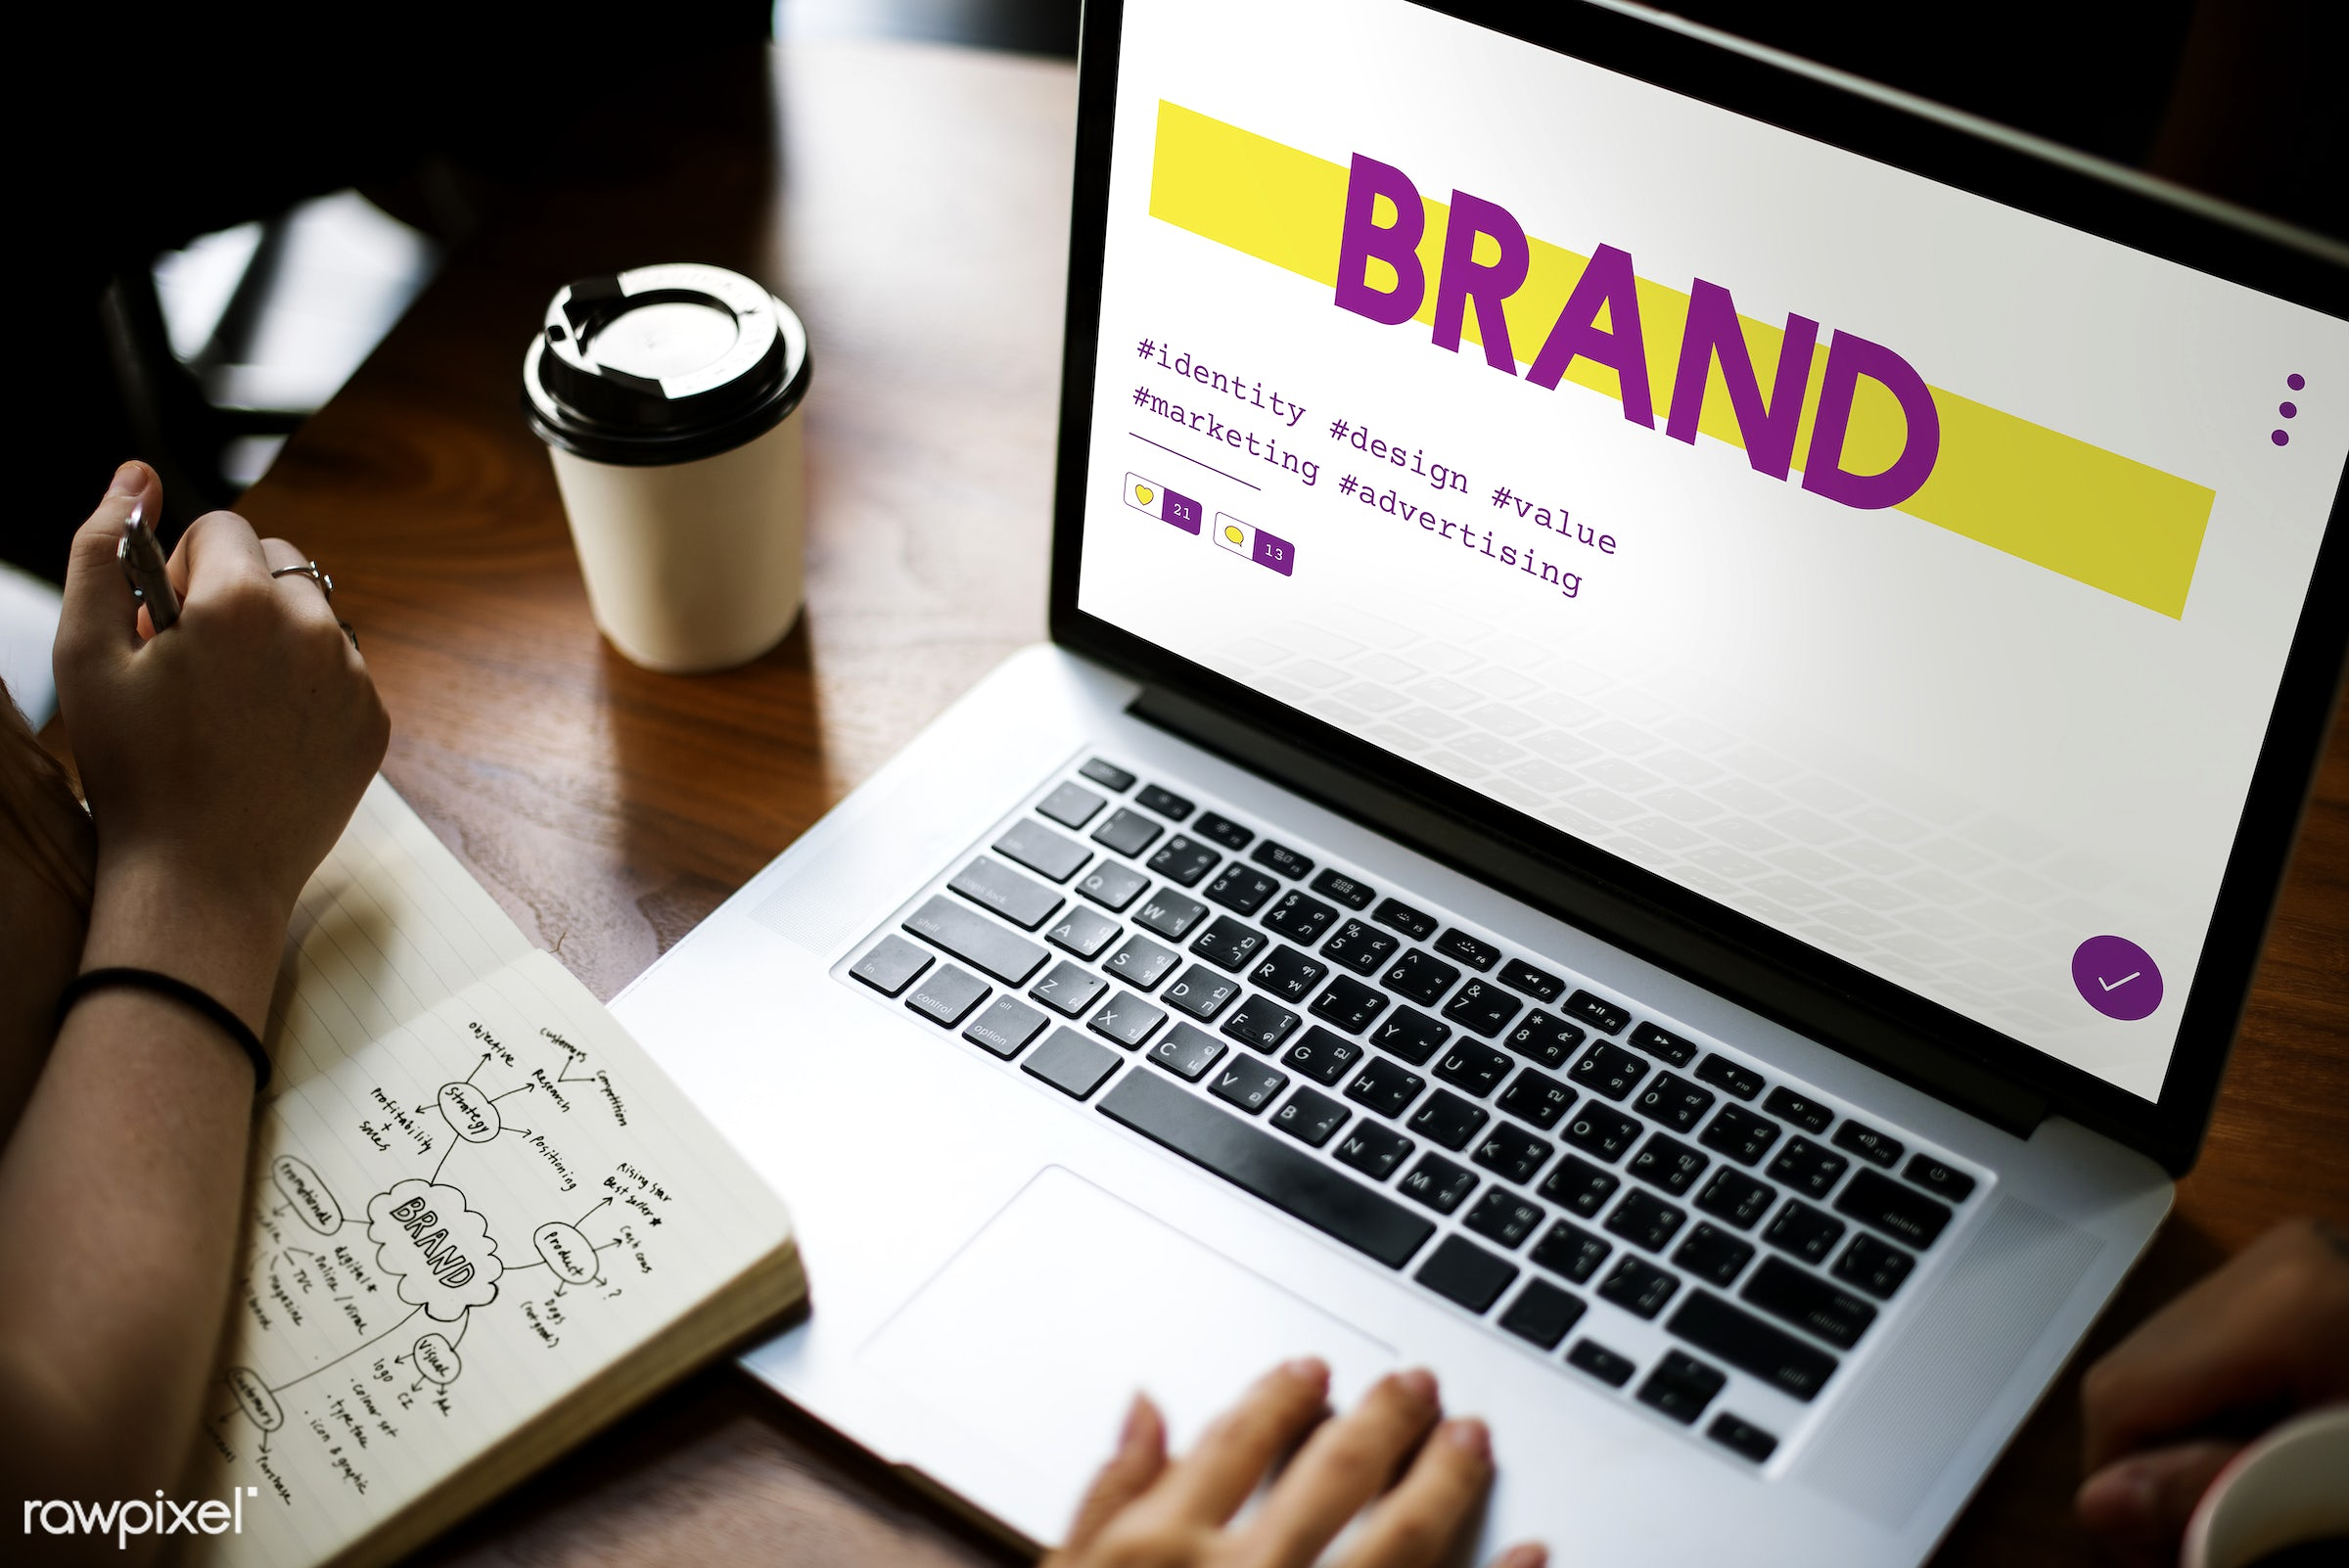 Online marketing - marketing, brand, copyright, advertising, brainstorm, browsing, business, coffee cup, concept,...